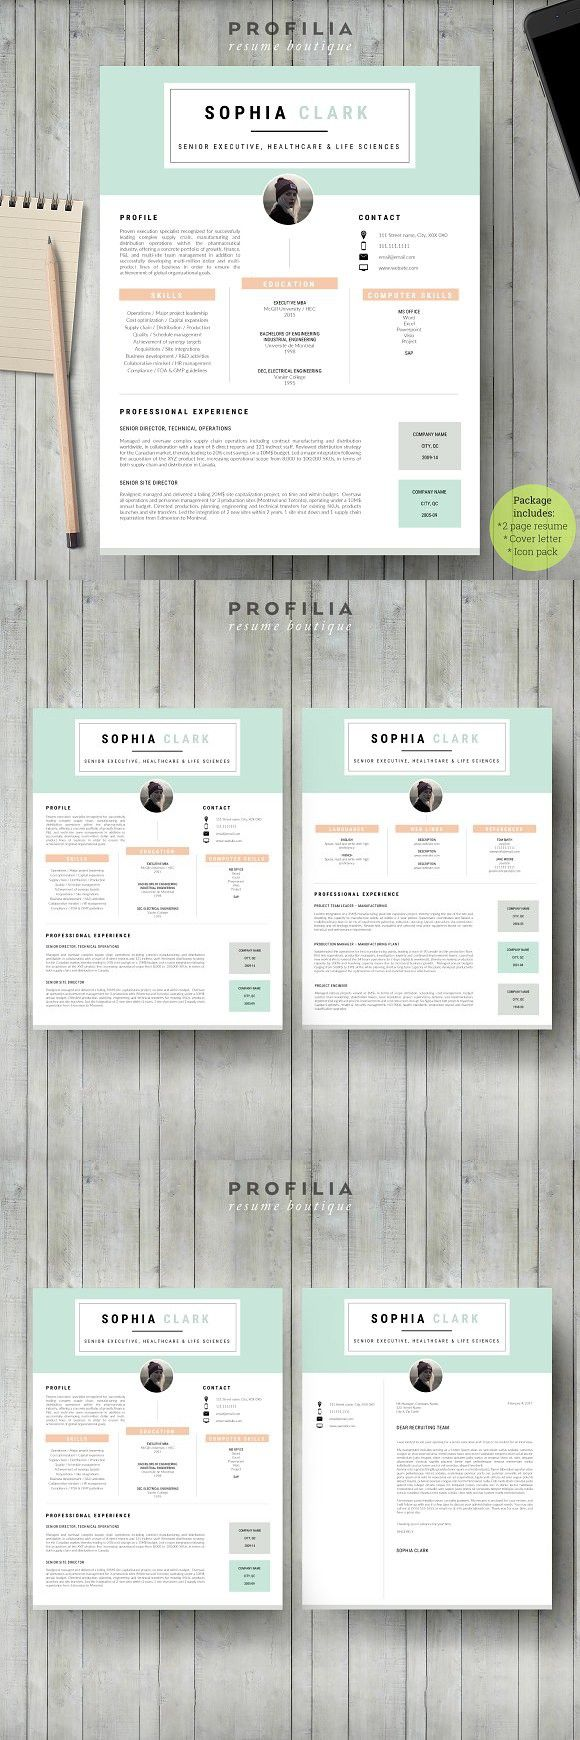 Word Resume & Cover letter Template. Resume Templates